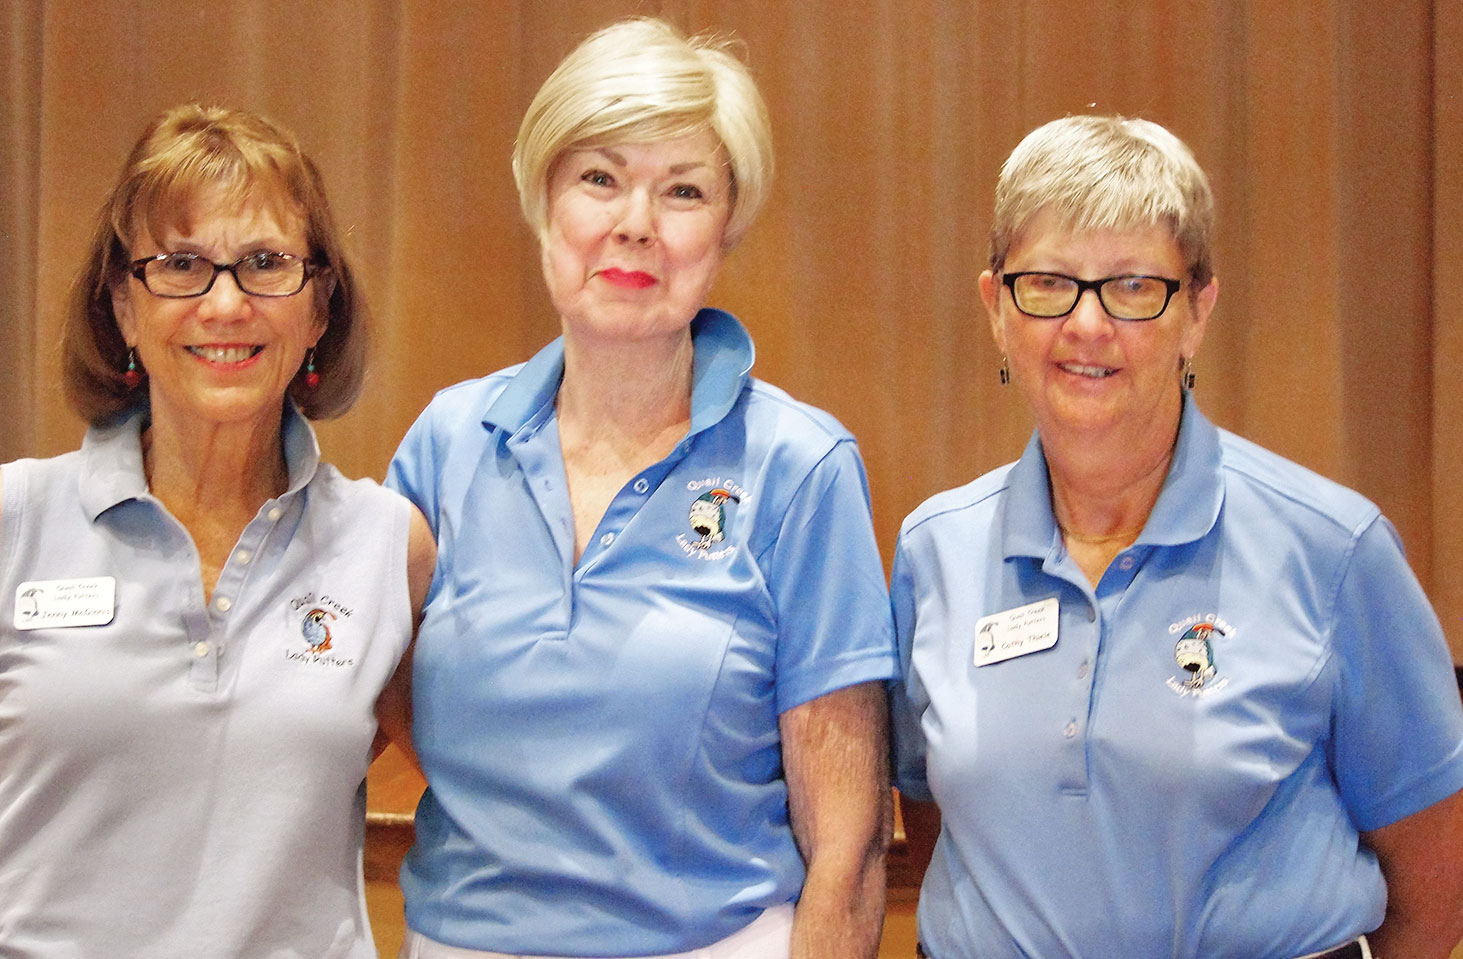 Left to right: Hole-in-one winners were Jenny McGinnis, Joyce Walton and Cathy Thiele; photo by Sylvia Butler